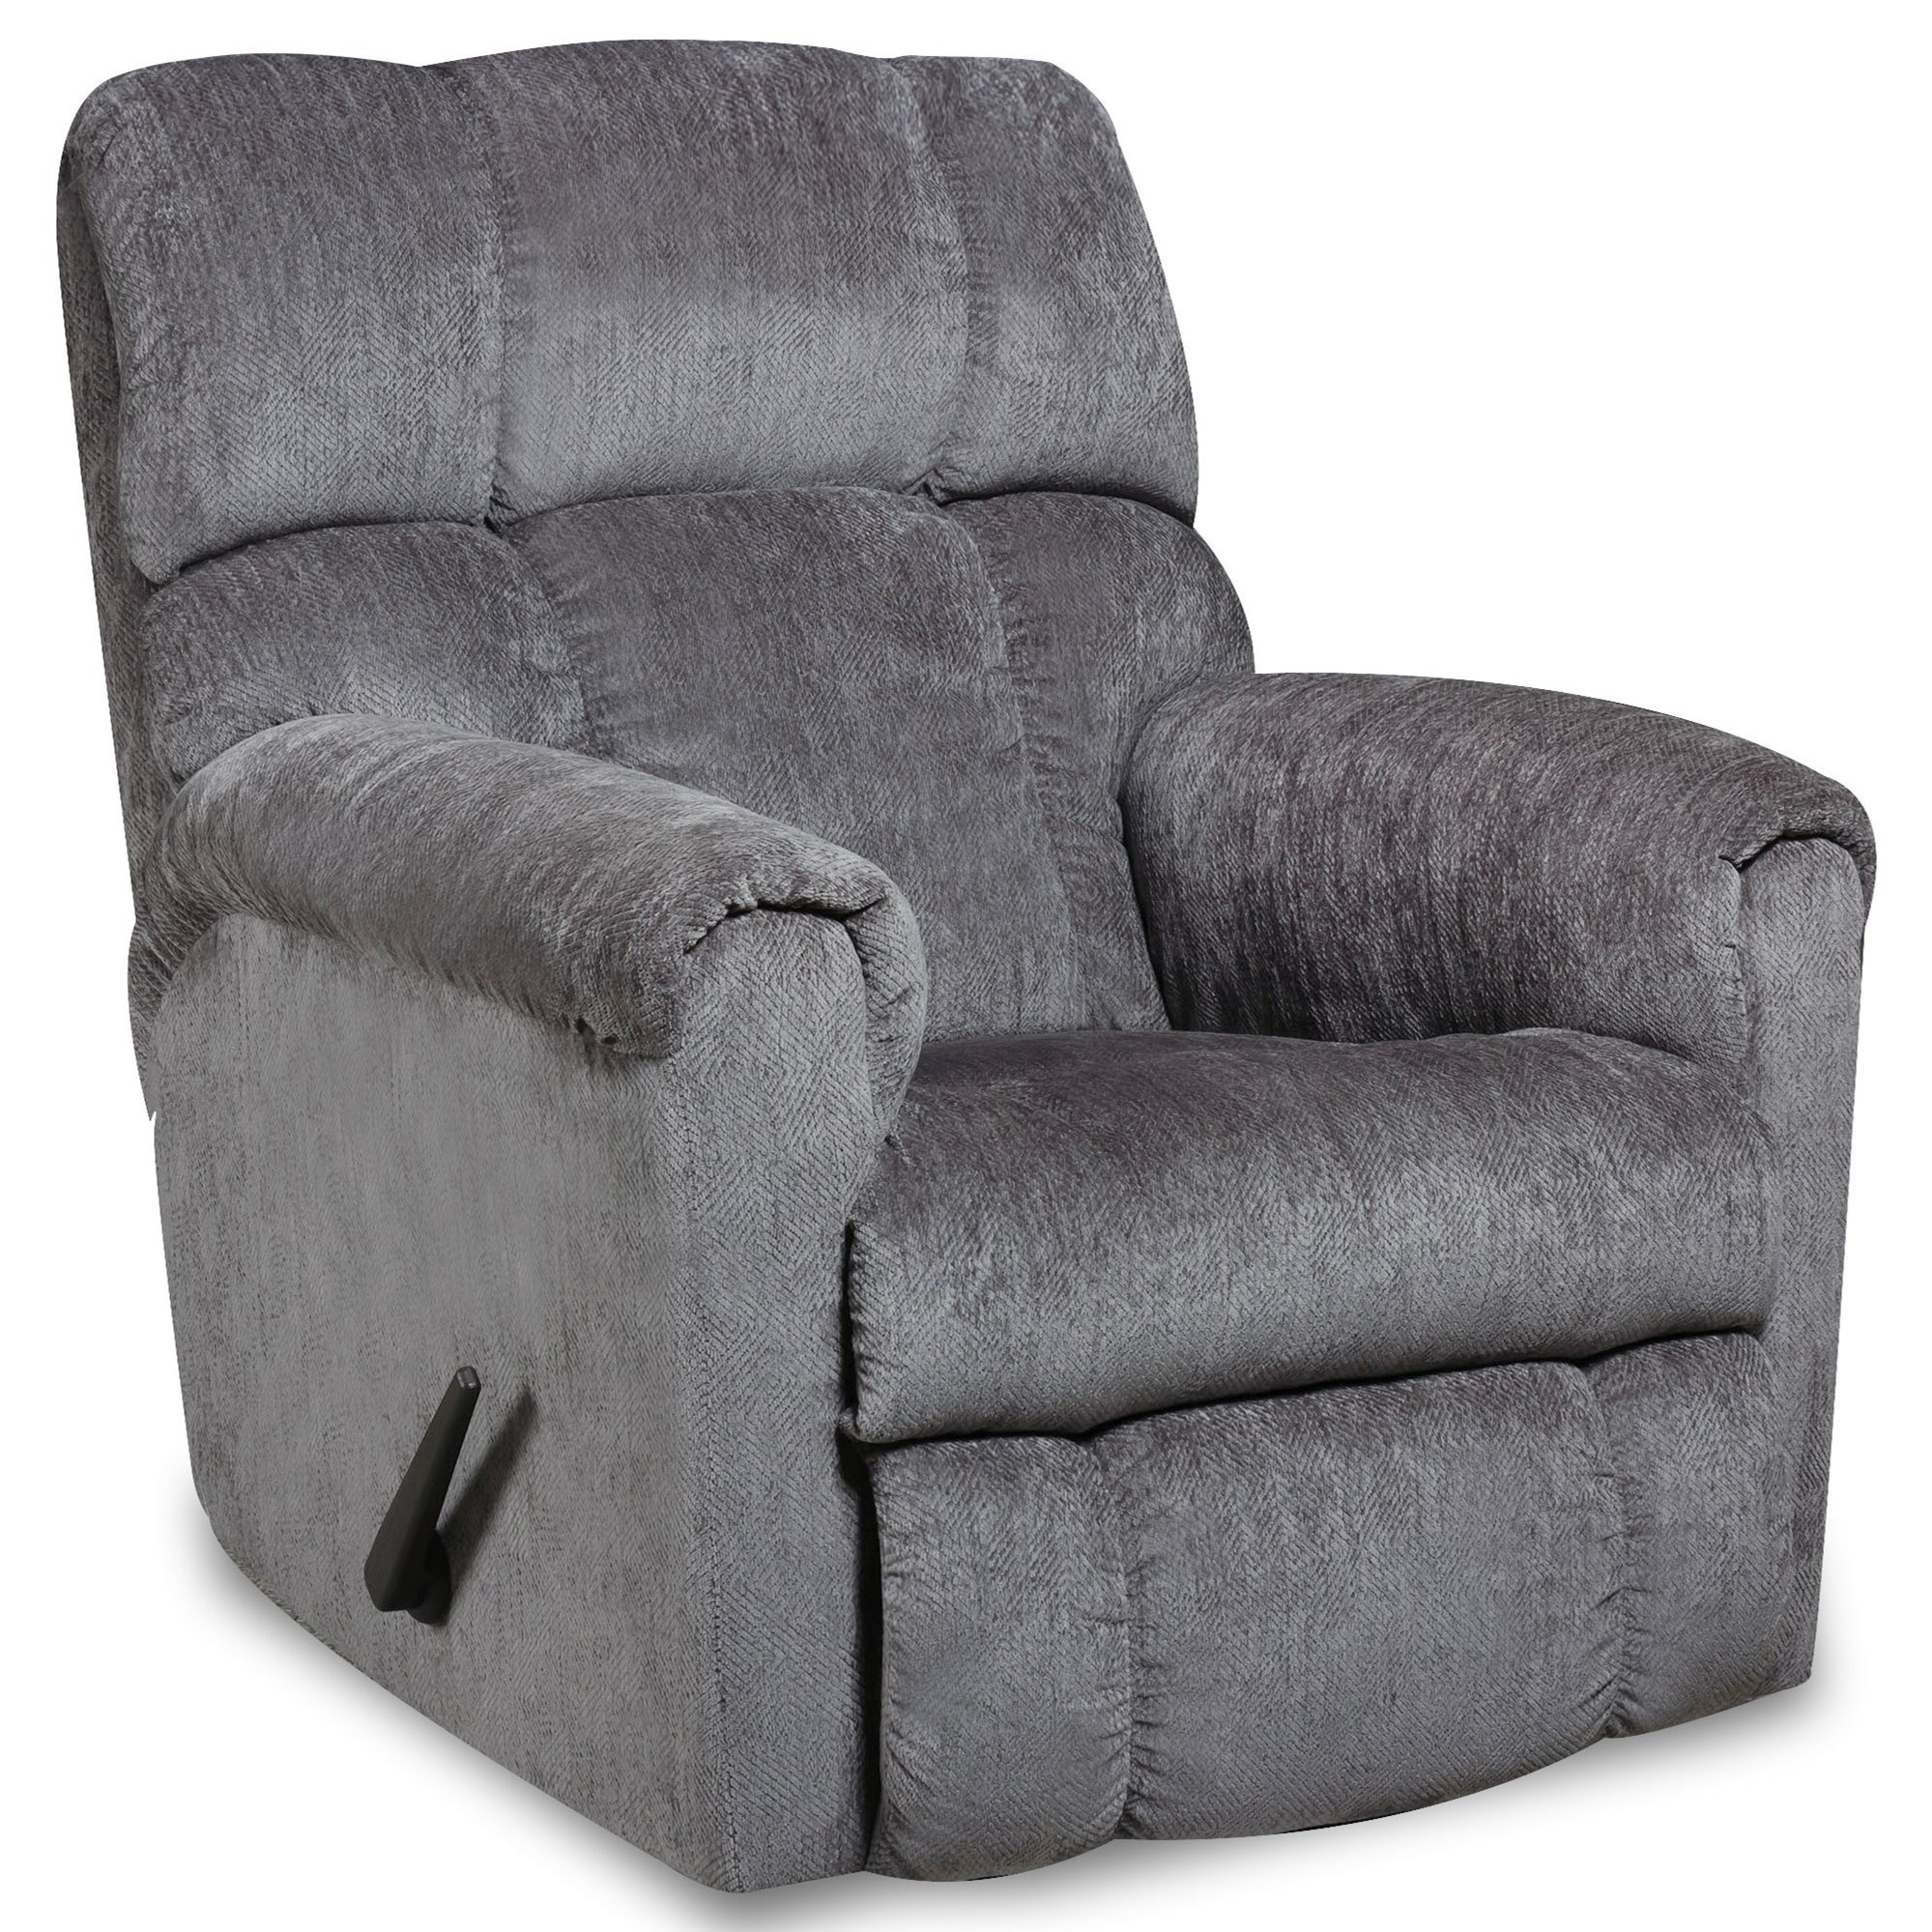 134 Chaise Recliner by HomeStretch at Steger's Furniture